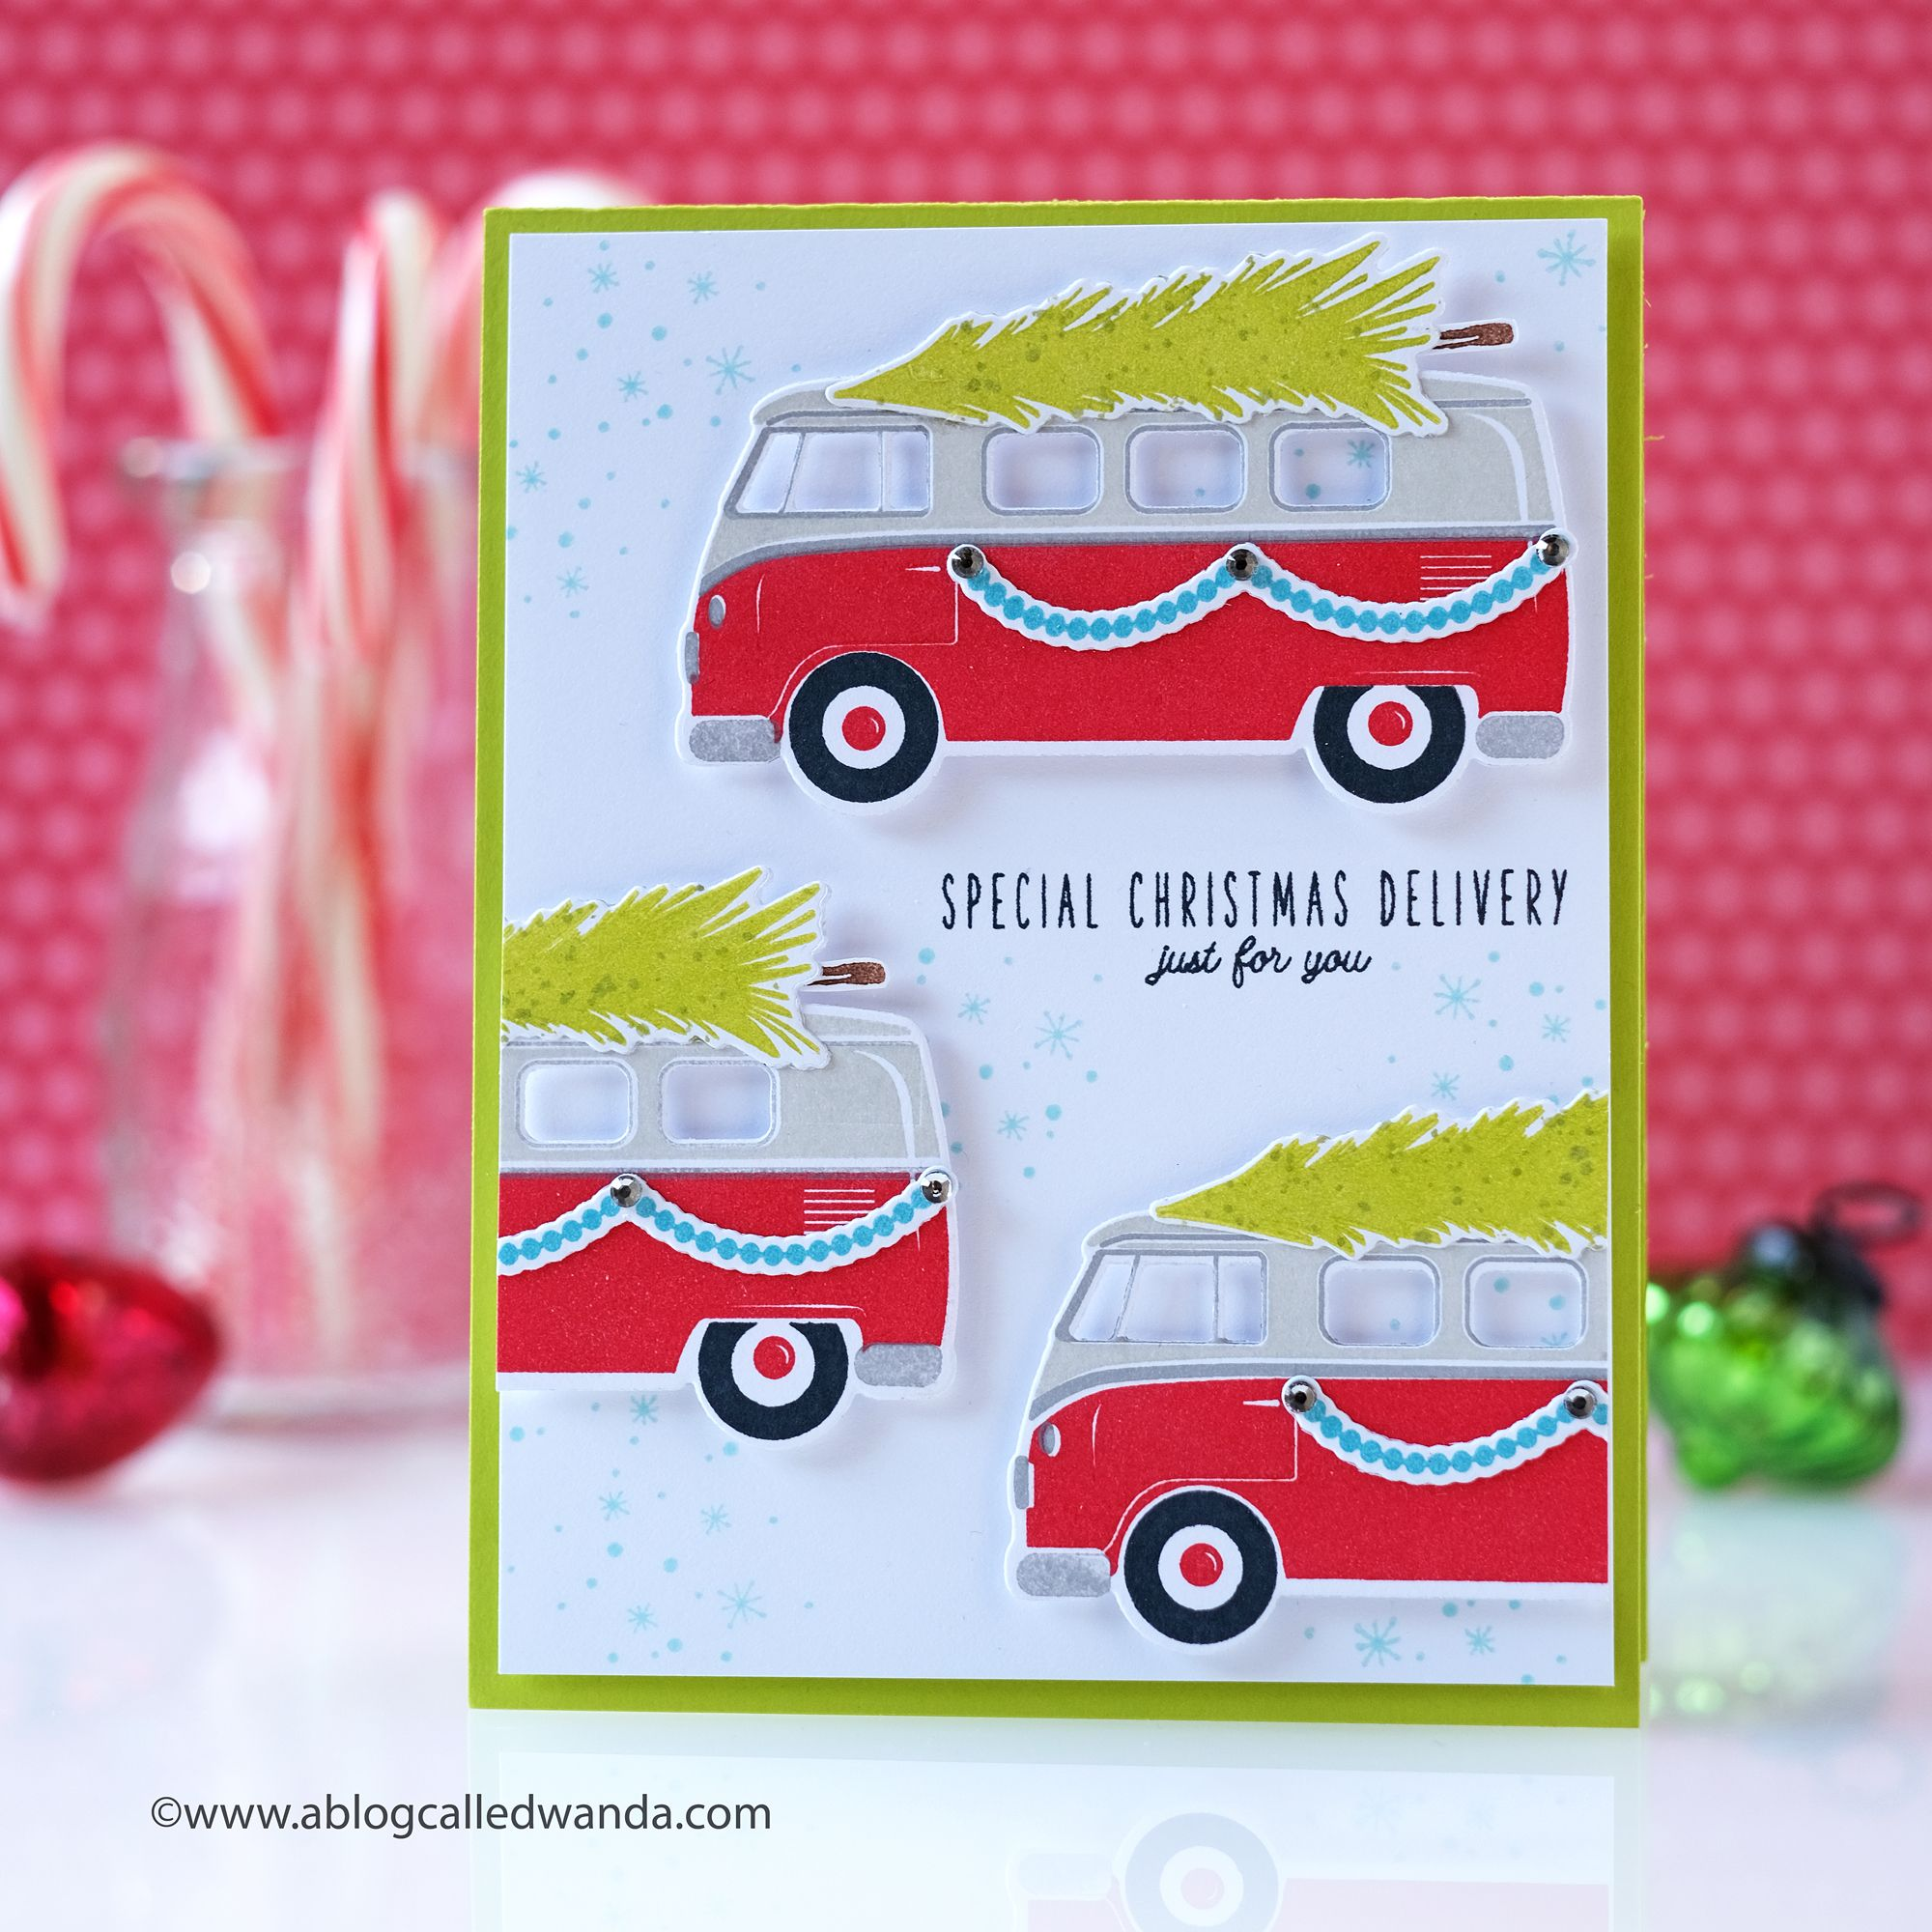 Cares Christmas Cards 2020 Christmas Care A Van in 2020 | Christmas cards, Cards handmade